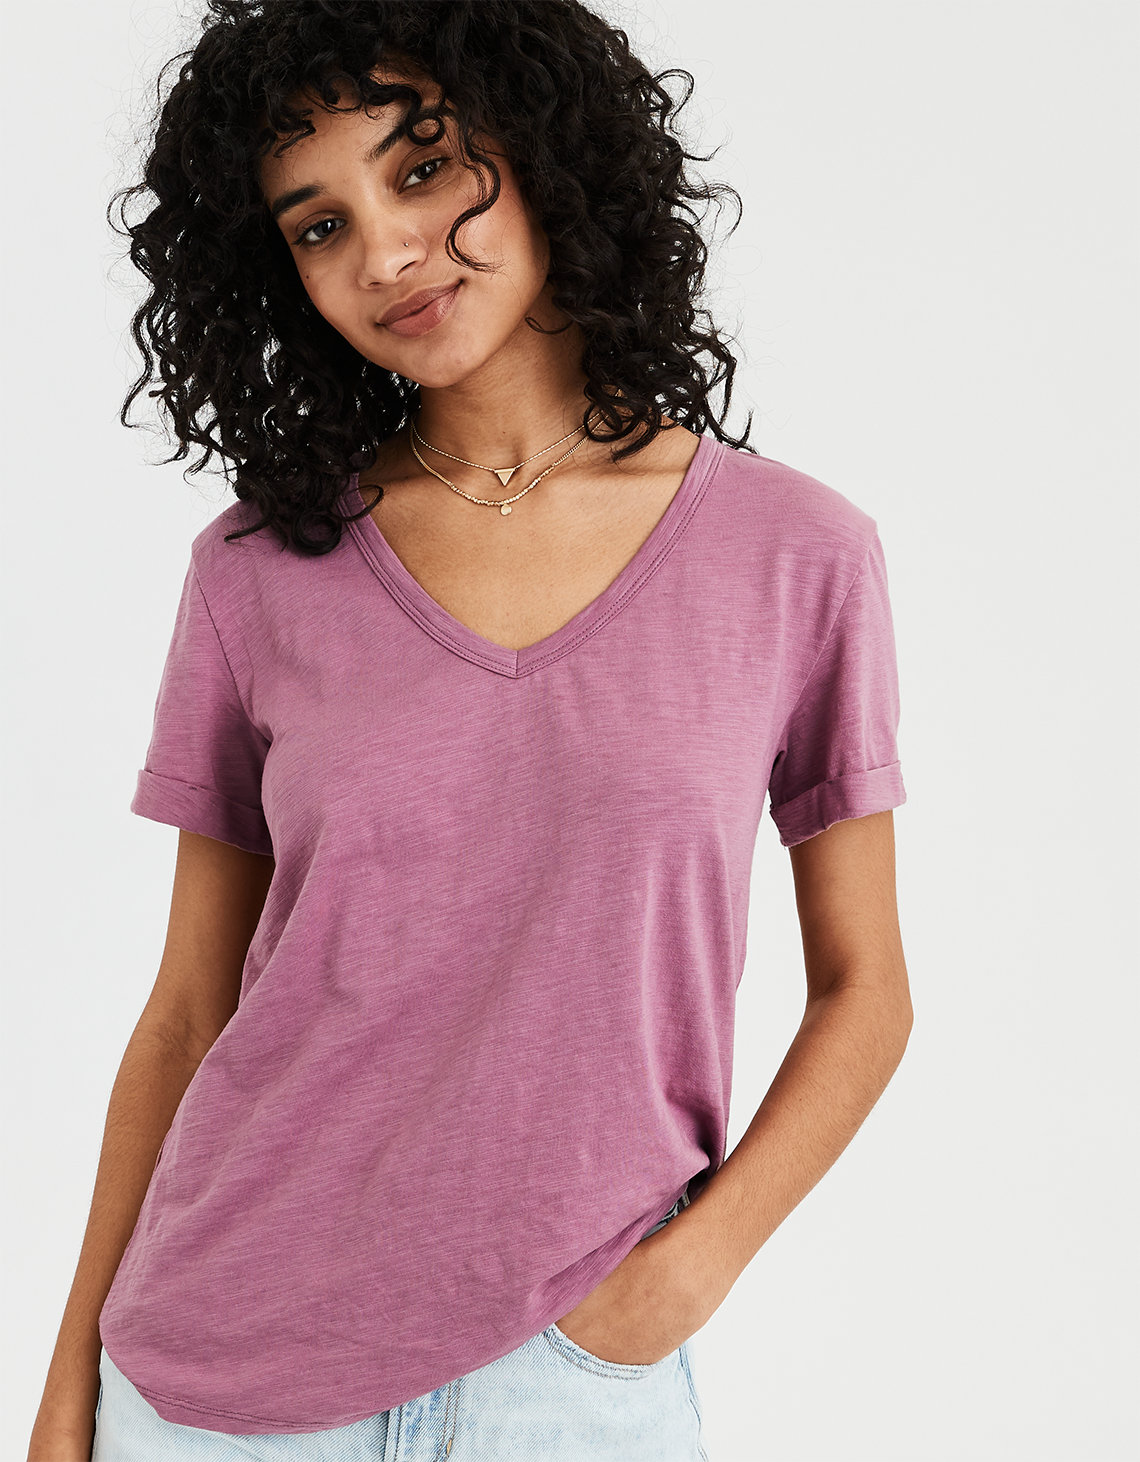 f5573091b65 AE V-Neck Favorite T-Shirt